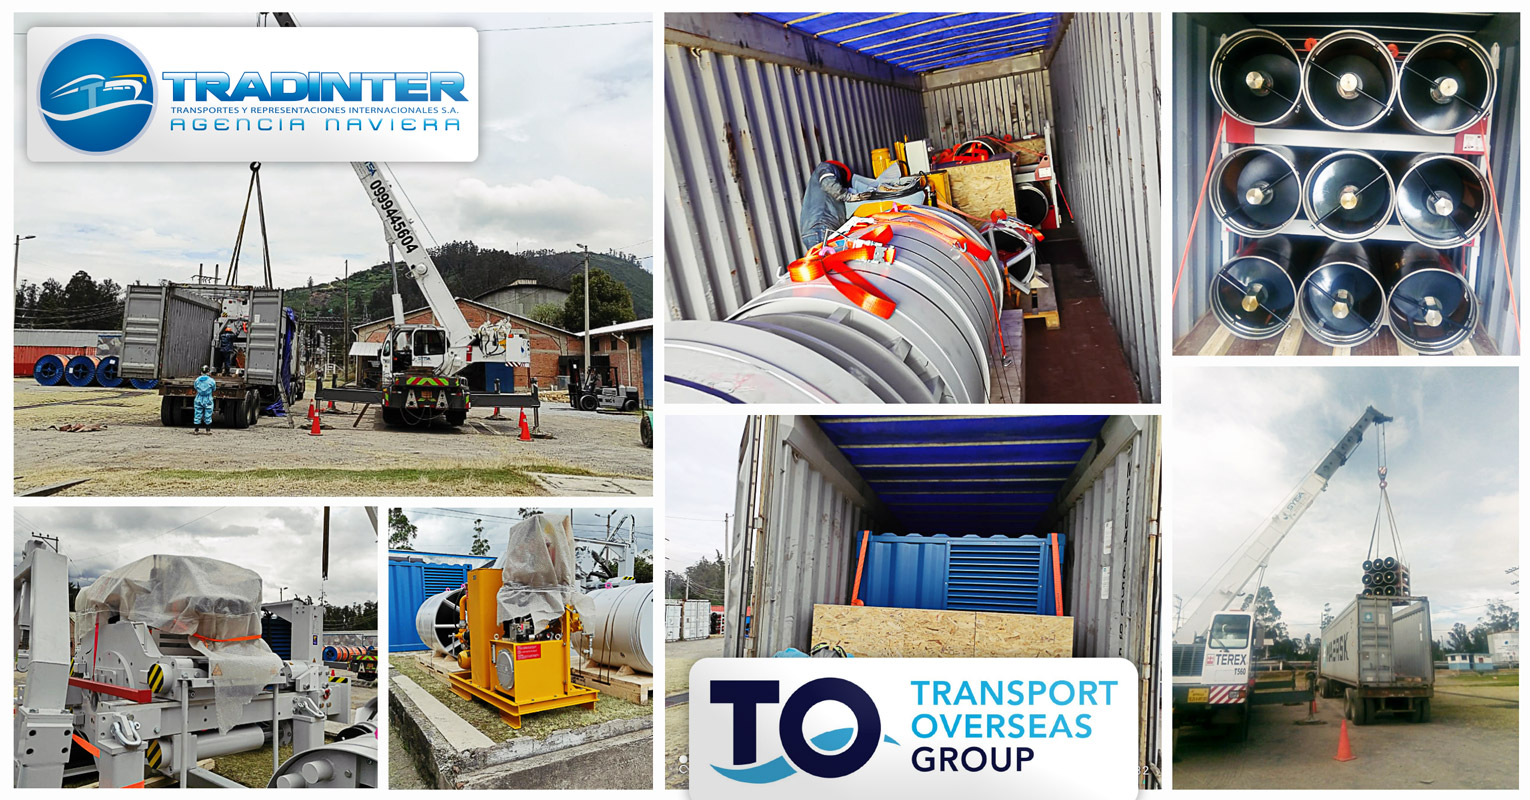 Tradinter and Trans Ocean Shipping collaborated on the transport of special tunneling equipment for Ecuador